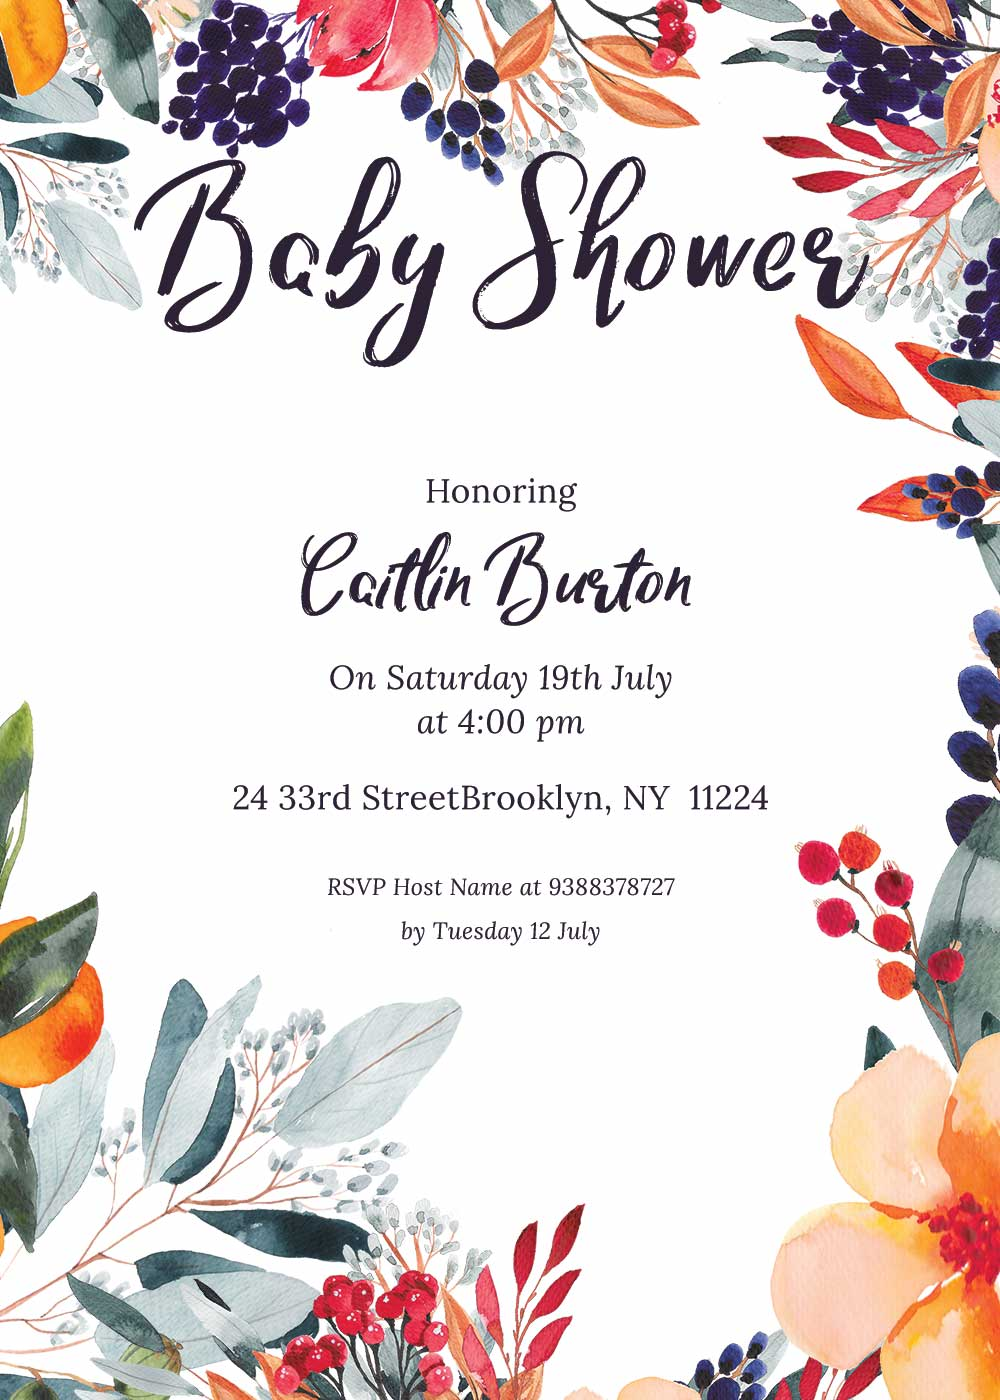 Baby shower invitations - Summer Theme